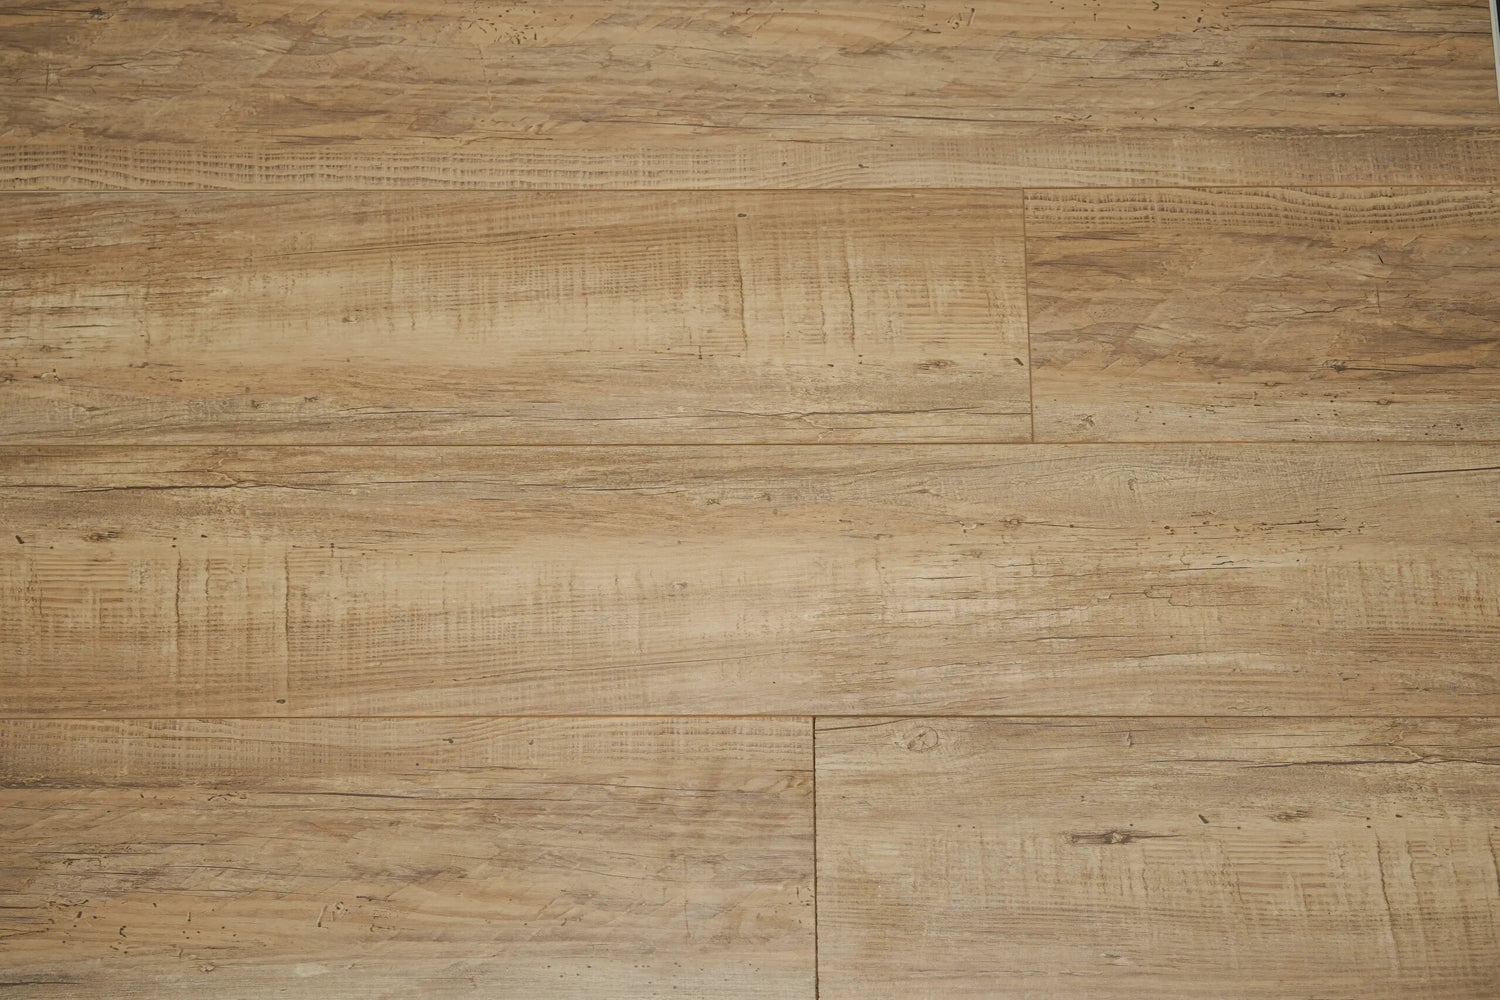 Aquaplus Vinyl Plank - Woodland - 4mm - 7mm (price per sq.ft)